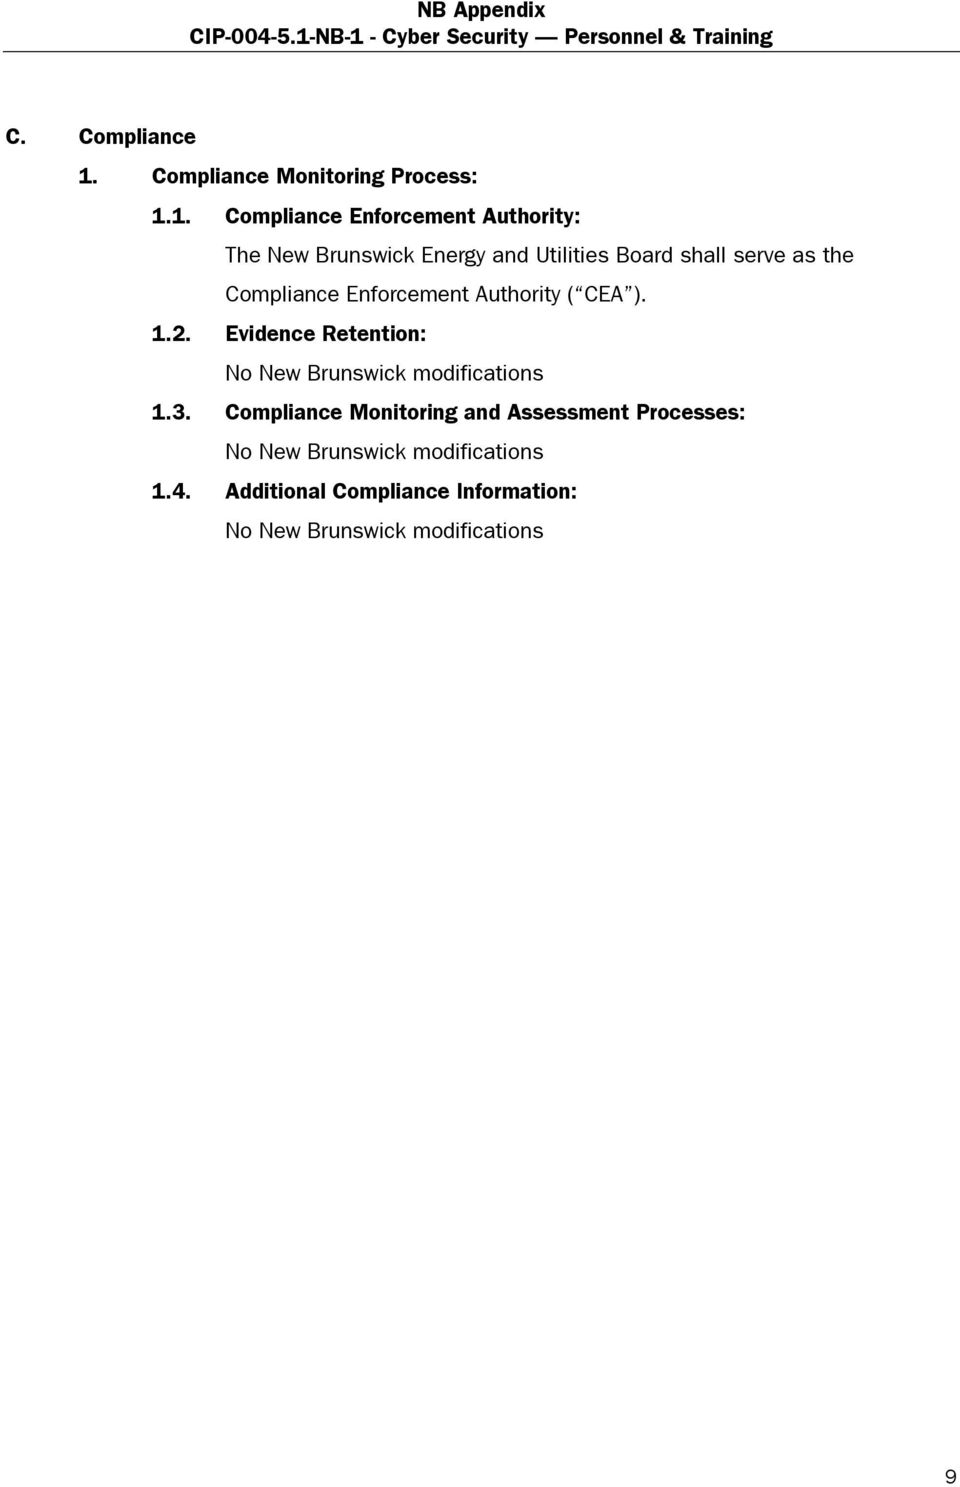 1. Compliance Enforcement Authority: The New Brunswick Energy and Utilities